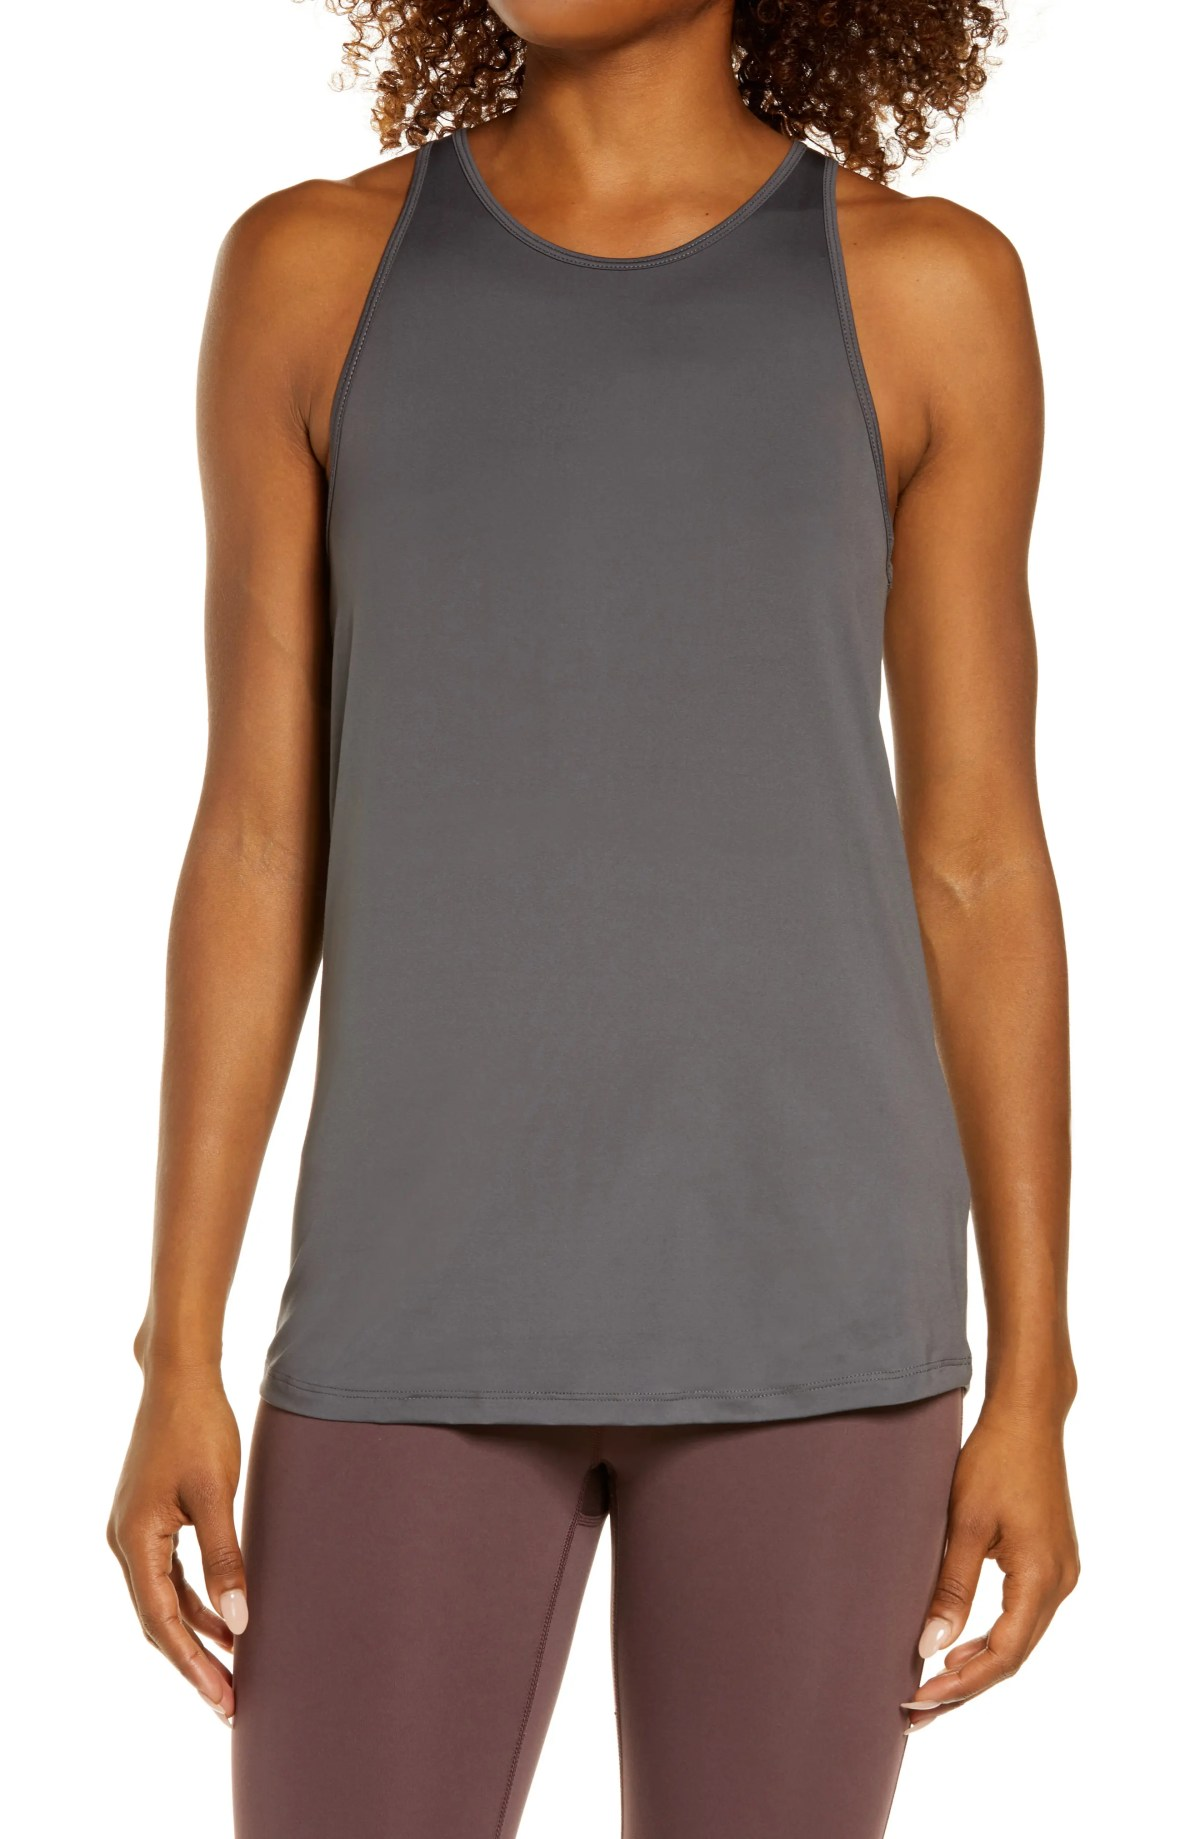 ZELLA Strength Racerback Tank, Main, color, GREY FORGED